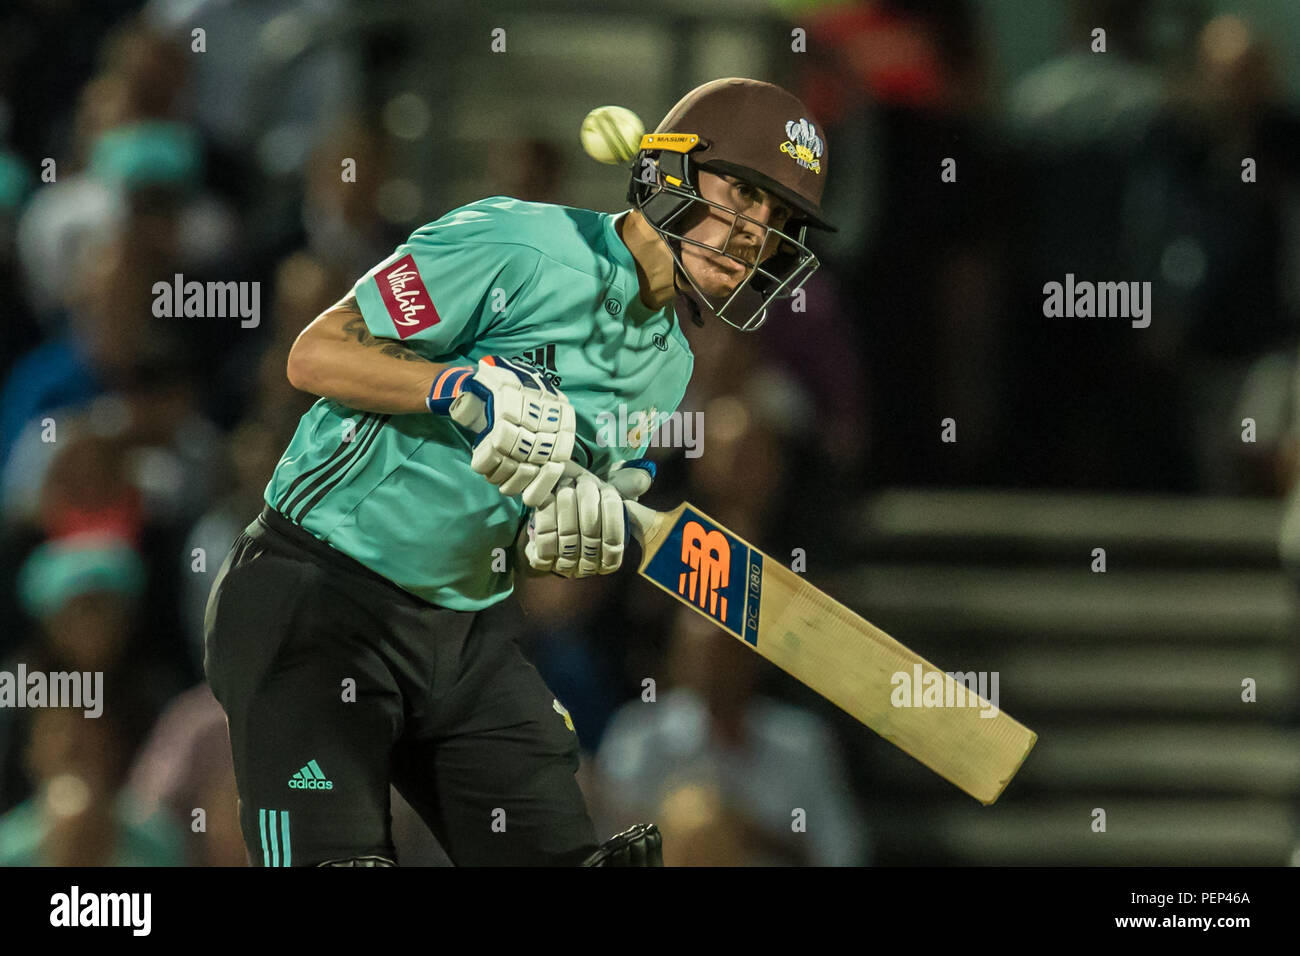 London, UK. 15 August, 2018. Nic Maddinson watches one go past his ear batting for Surrey against Hampshire in the Vitality T20 Blast match at the Kia Oval. David Rowe/Alamy Live News - Stock Image